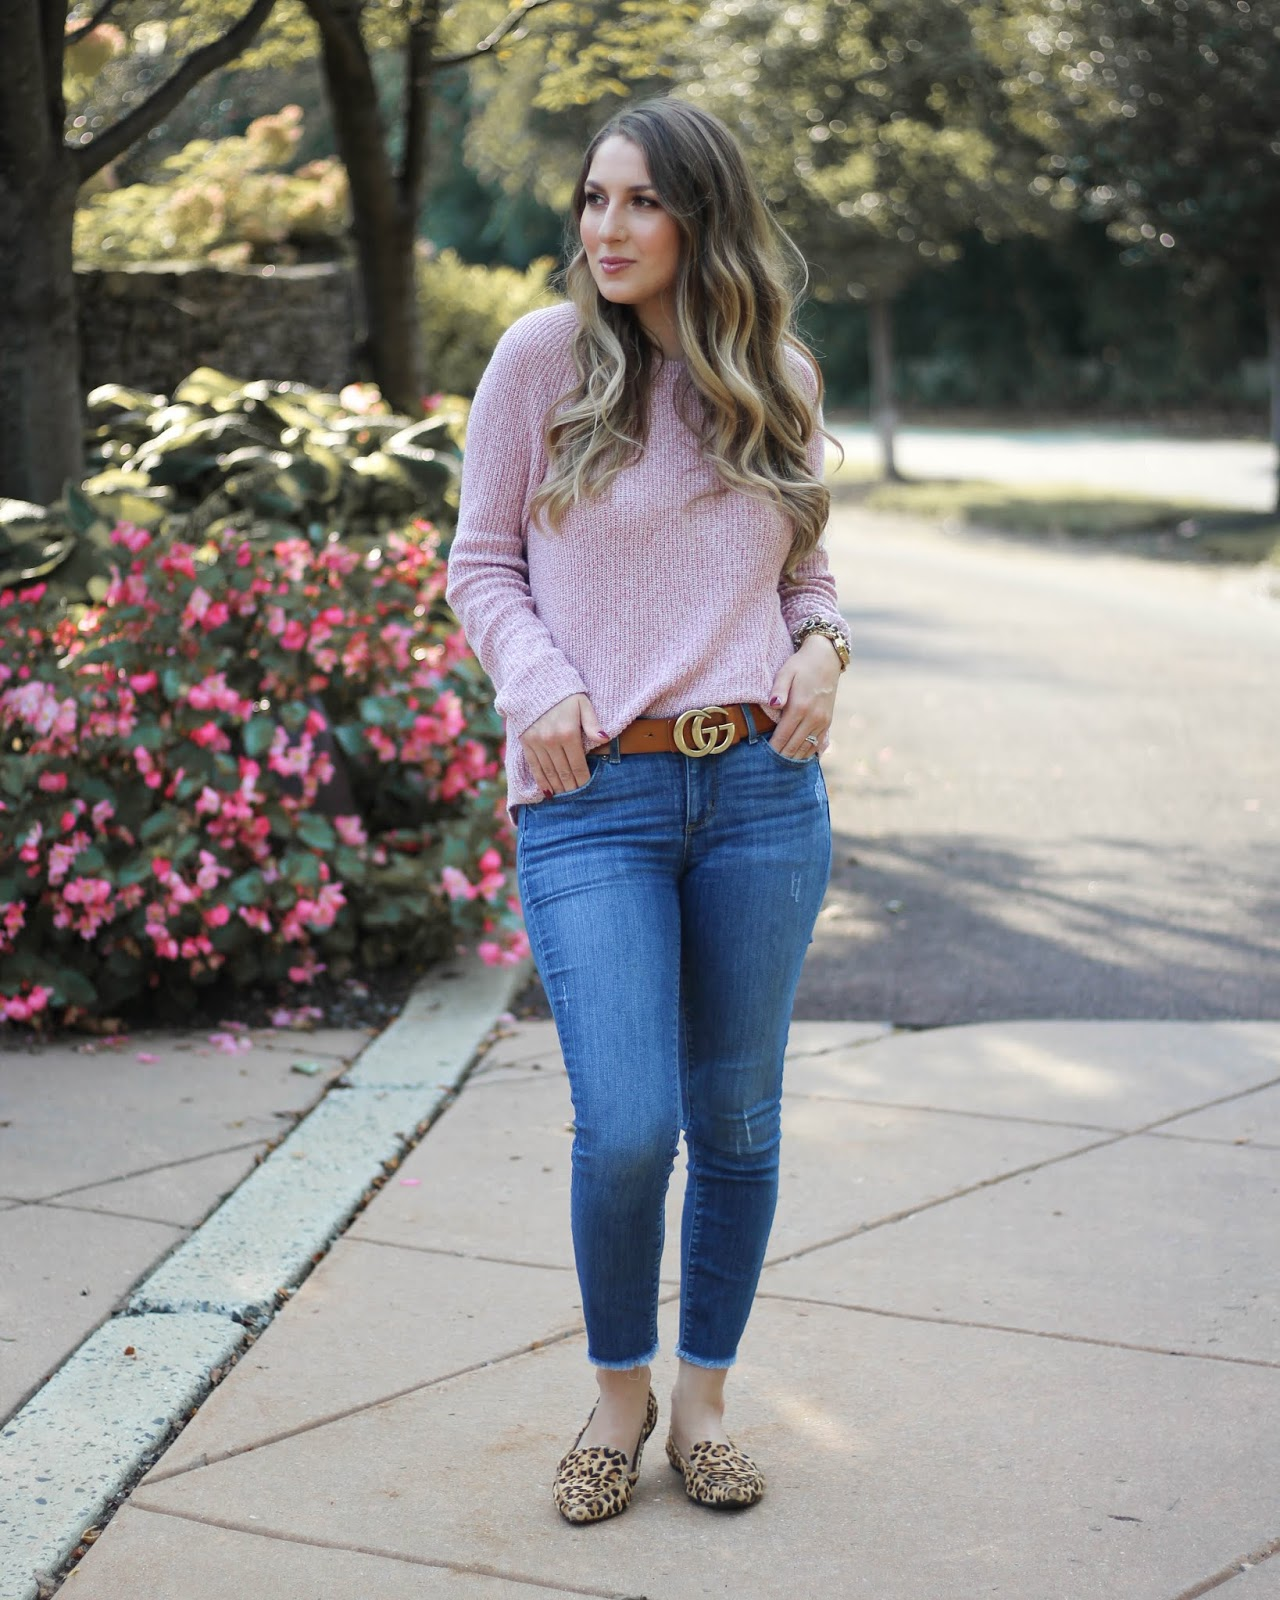 bea1988133158 CASUAL FALL STYLE INSPIRATION    PINK SWEATER + FRAYED DENIM   A ...